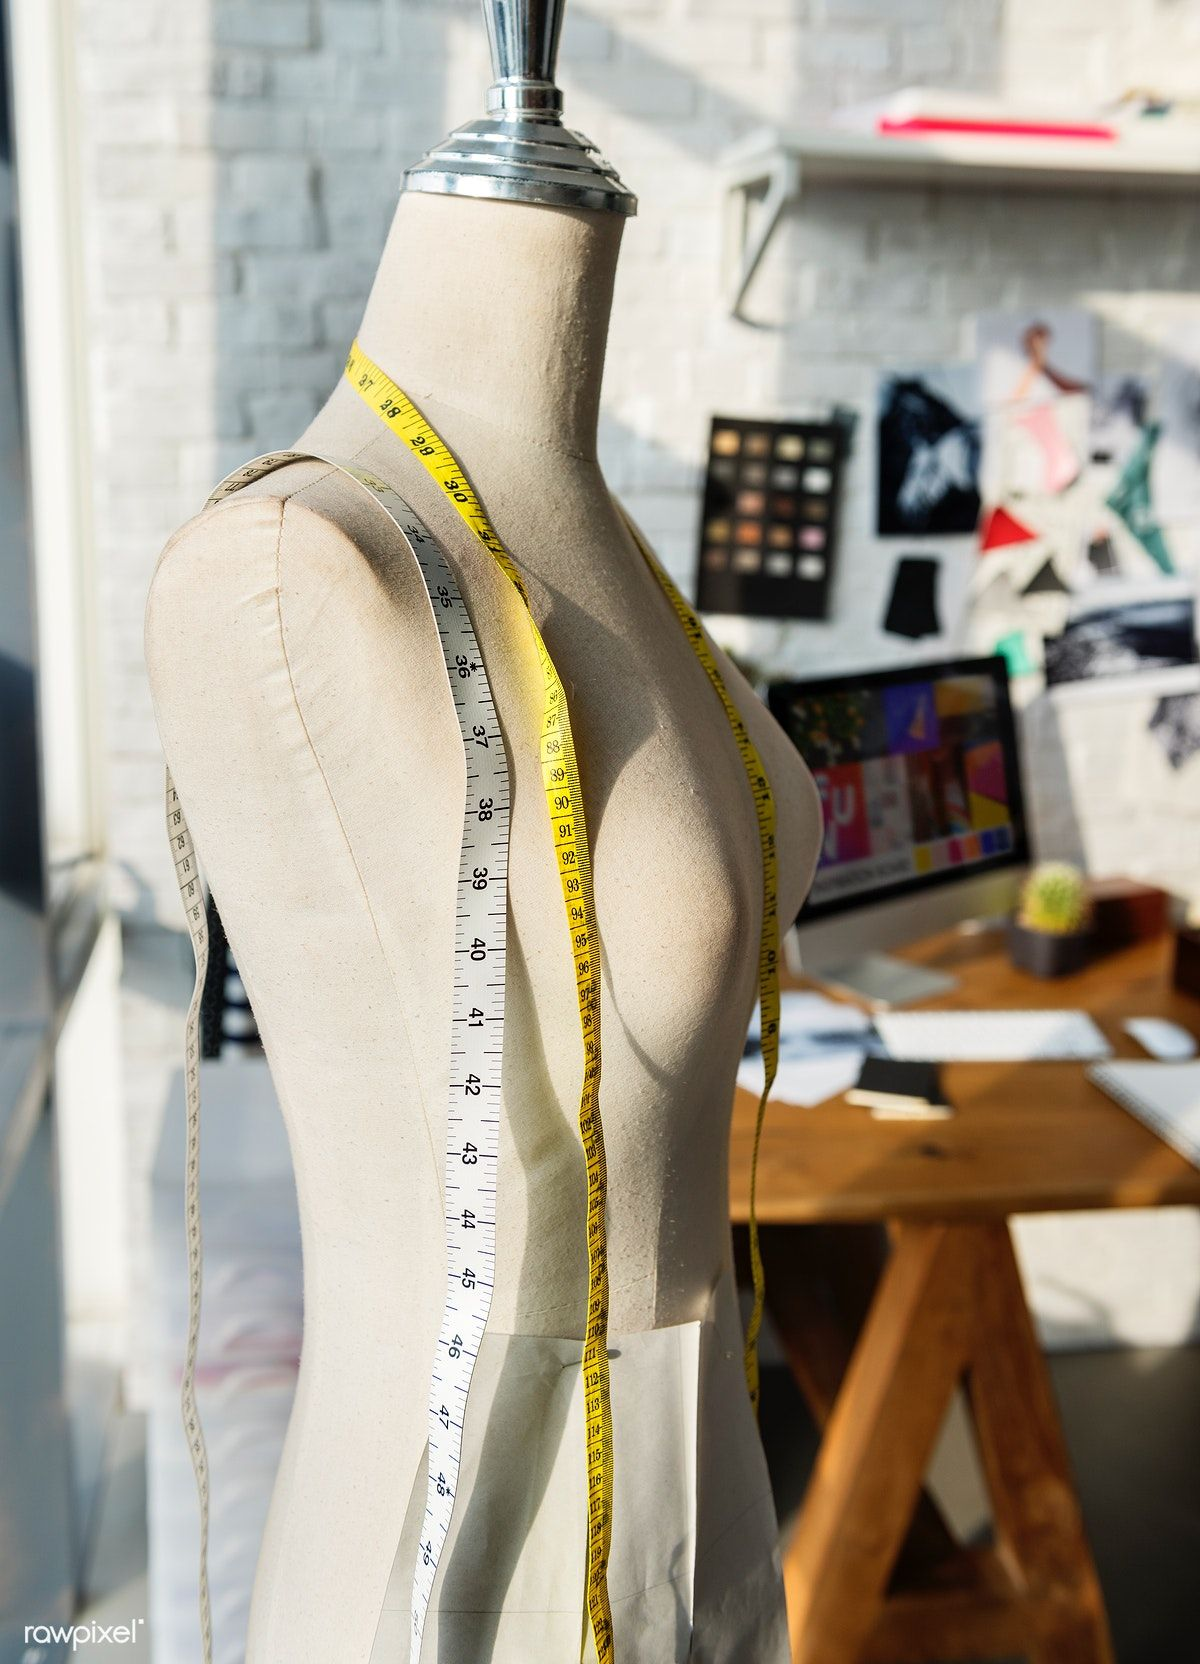 Fashion Design Mannequin Measurement Concept | premium image by rawpixel.com